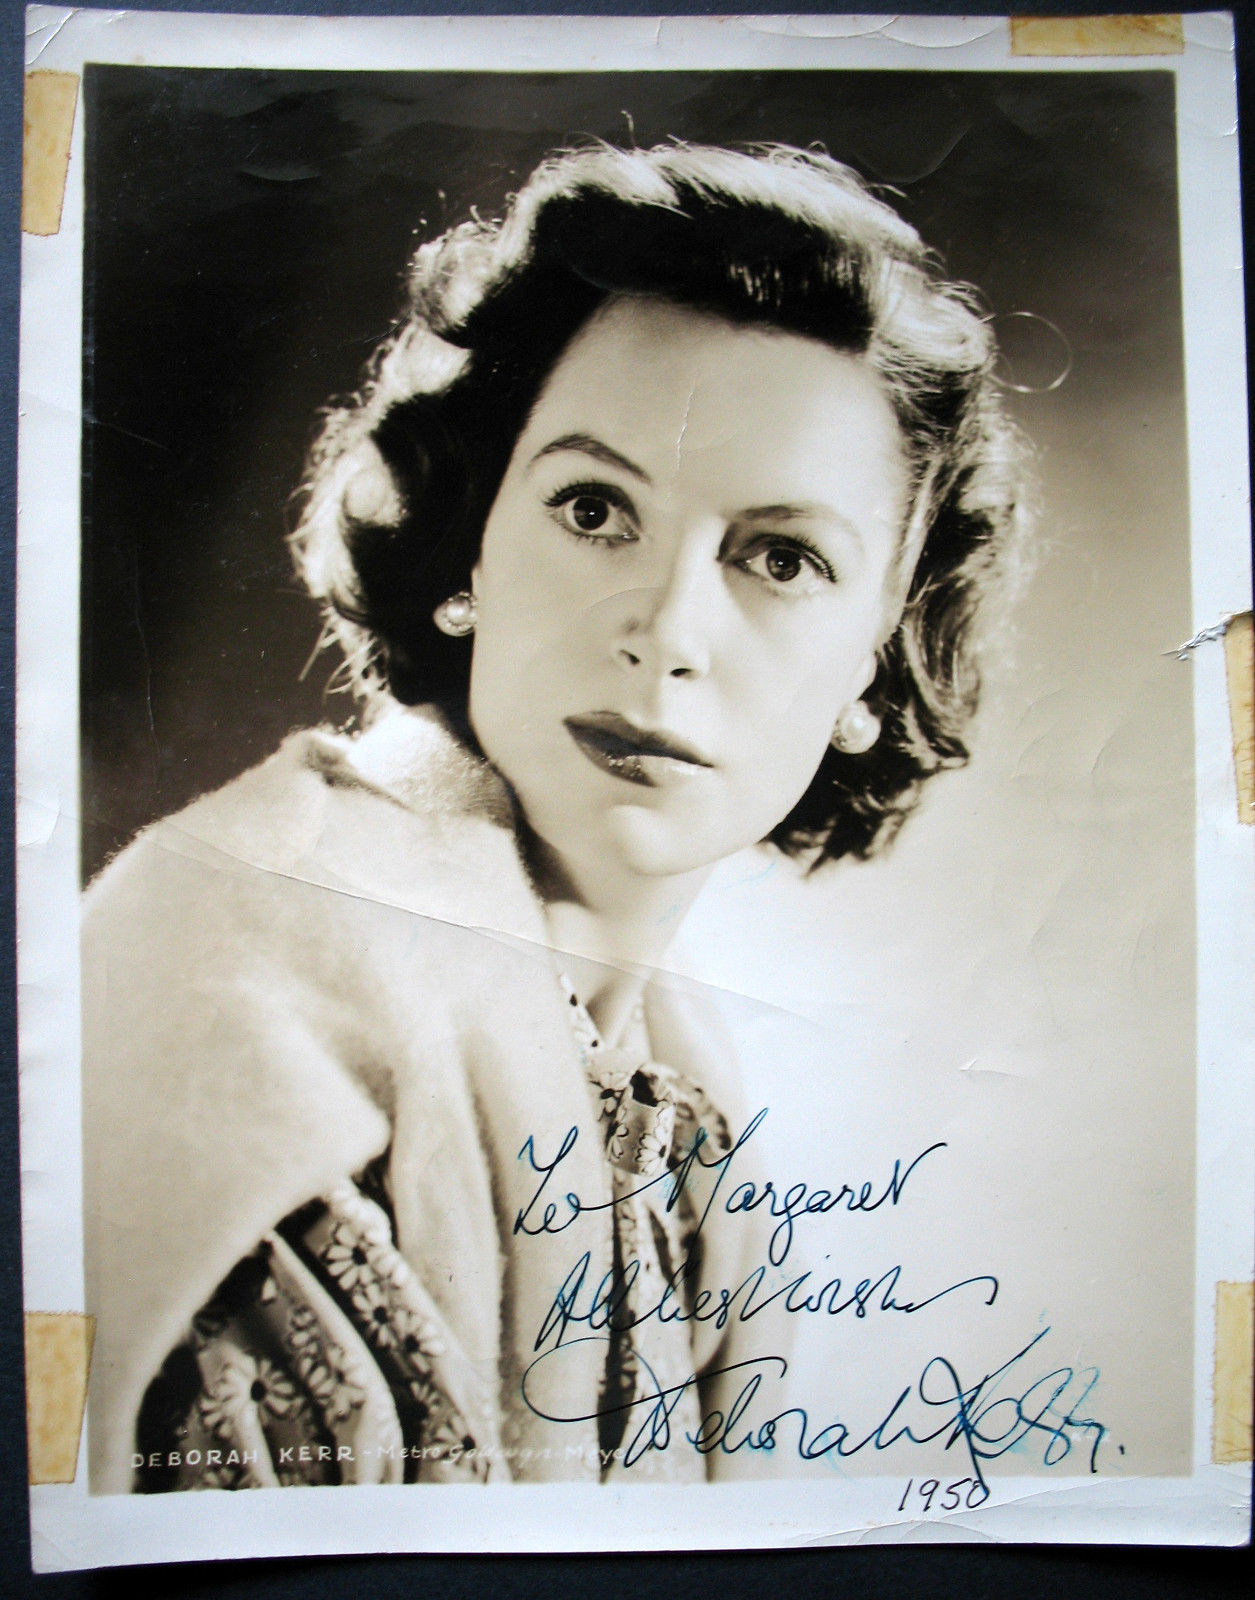 DEBORAH KERR (ORIGINAL 1950 SIGN AUTOGRAPH PHOTO) CLASSIC ACTRESS